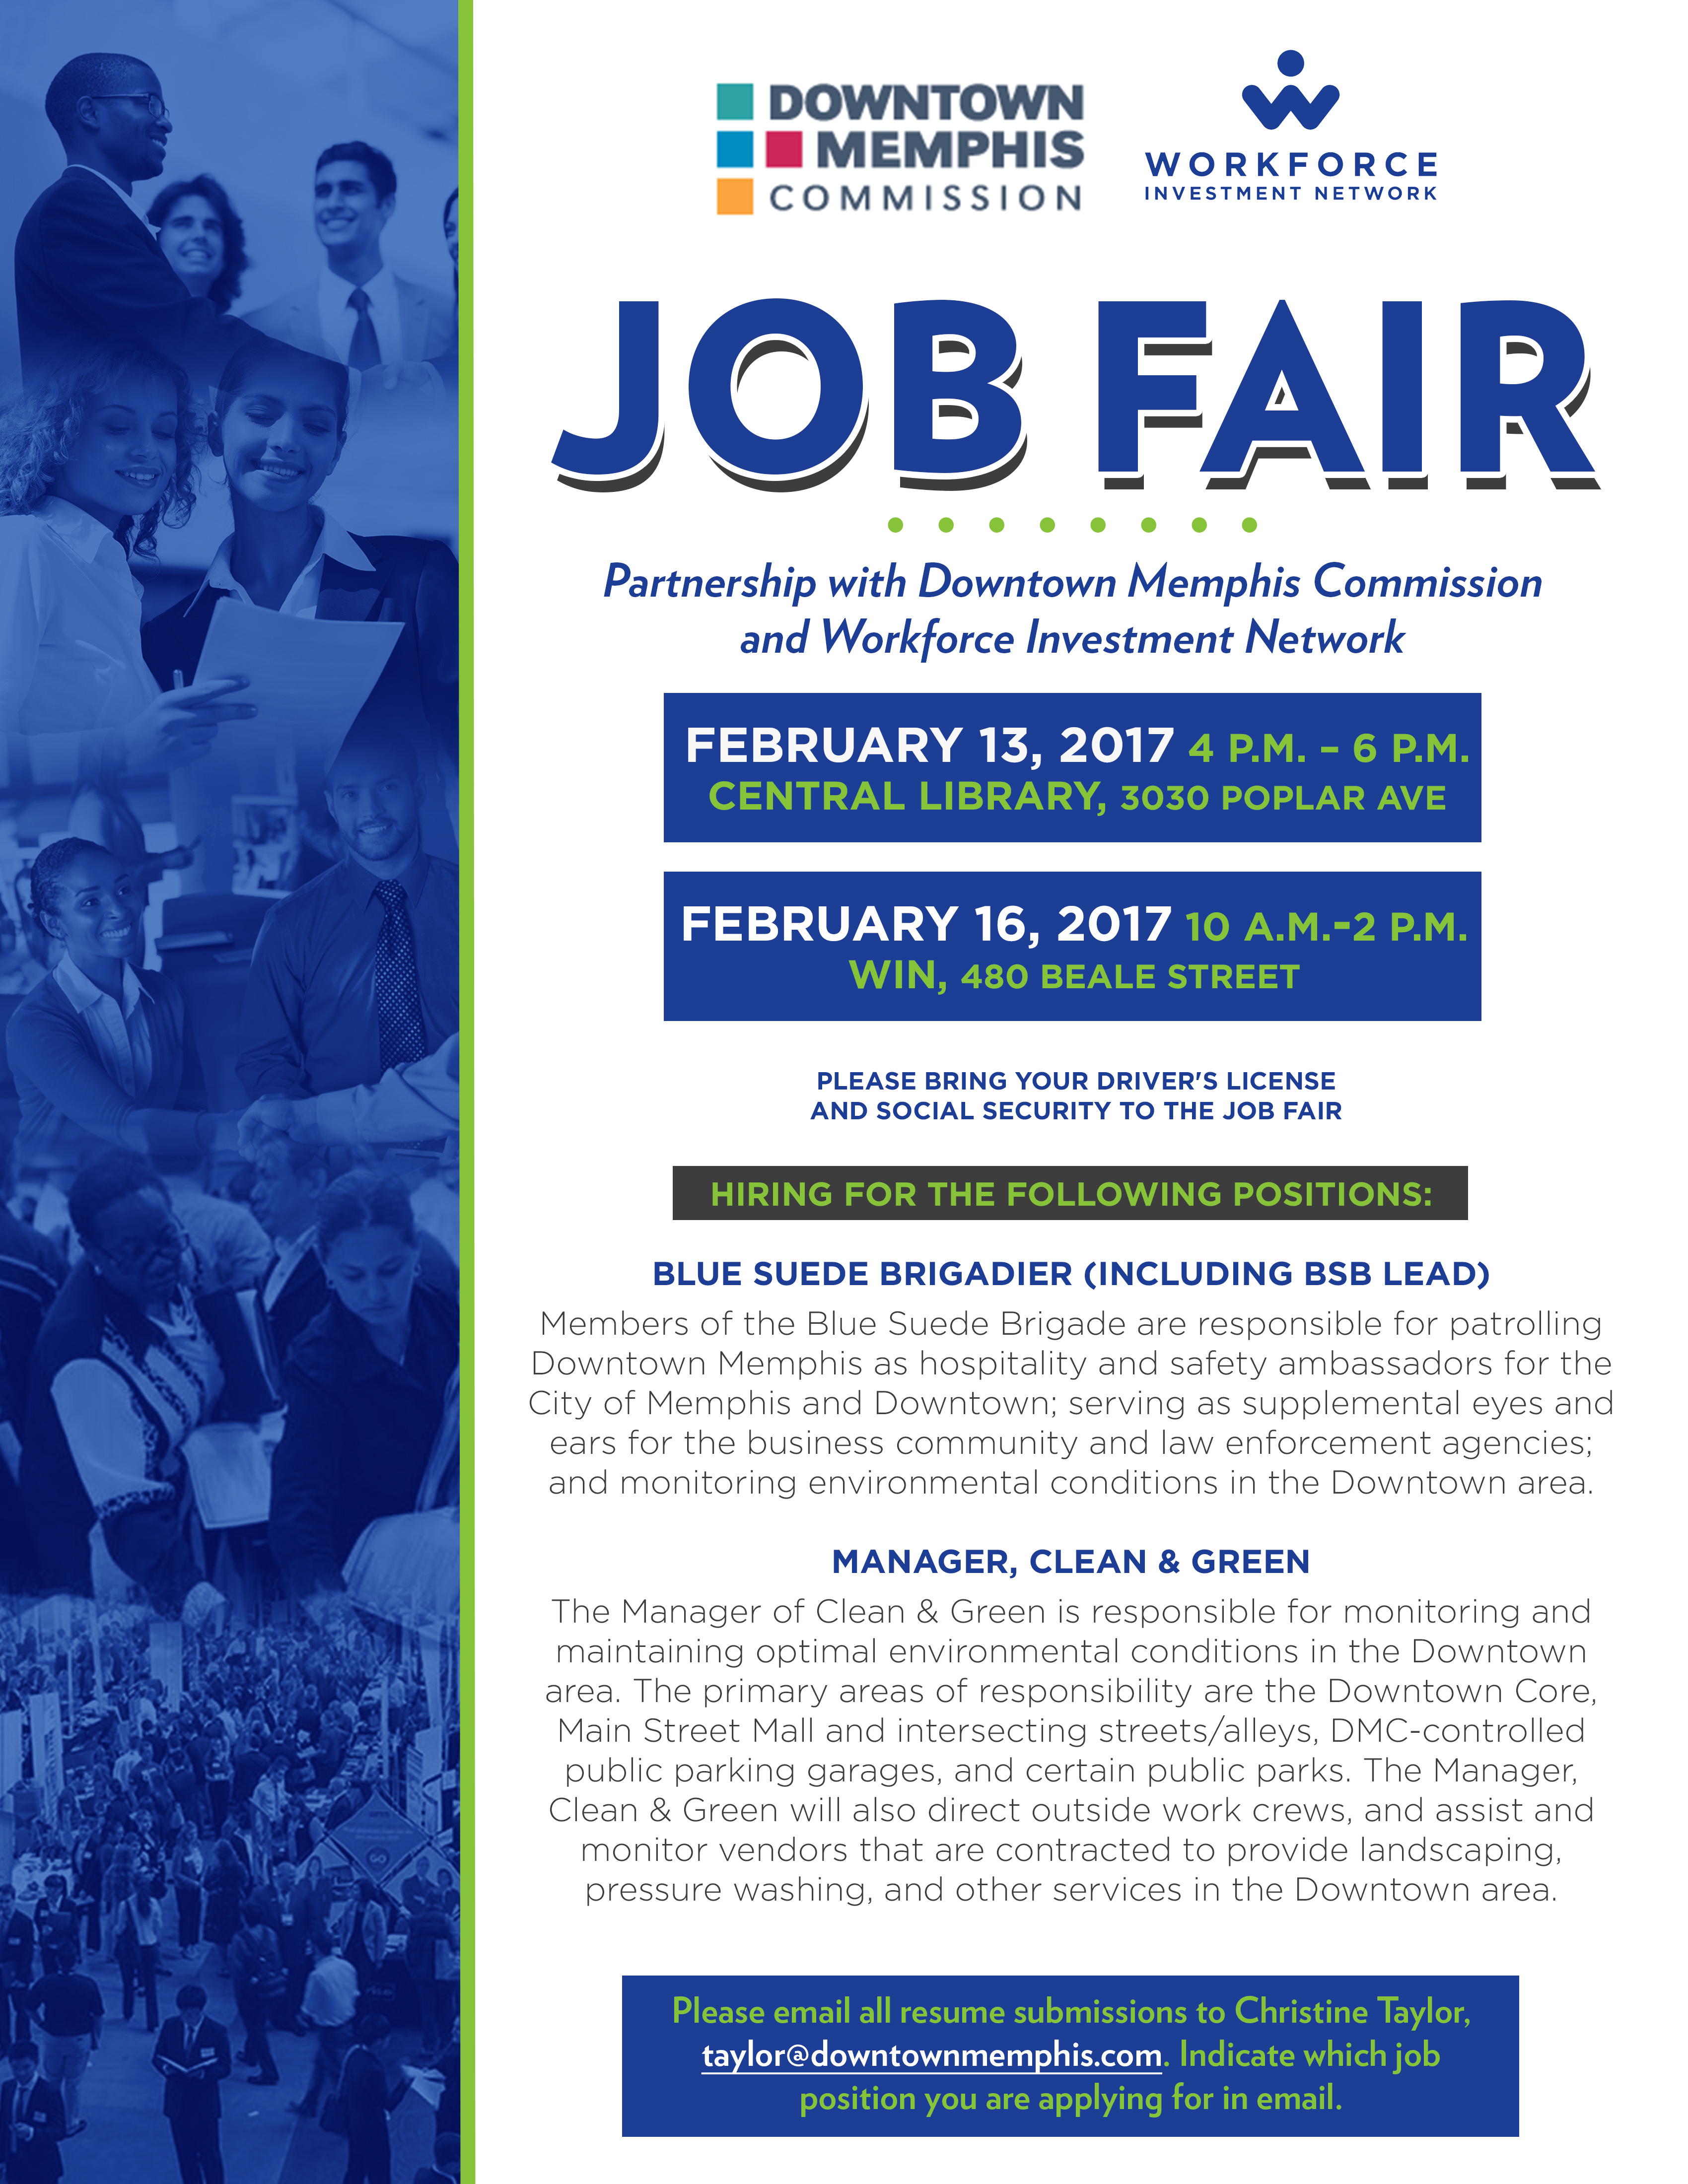 Job Fair Hosted By Downtown Memphis Commission And